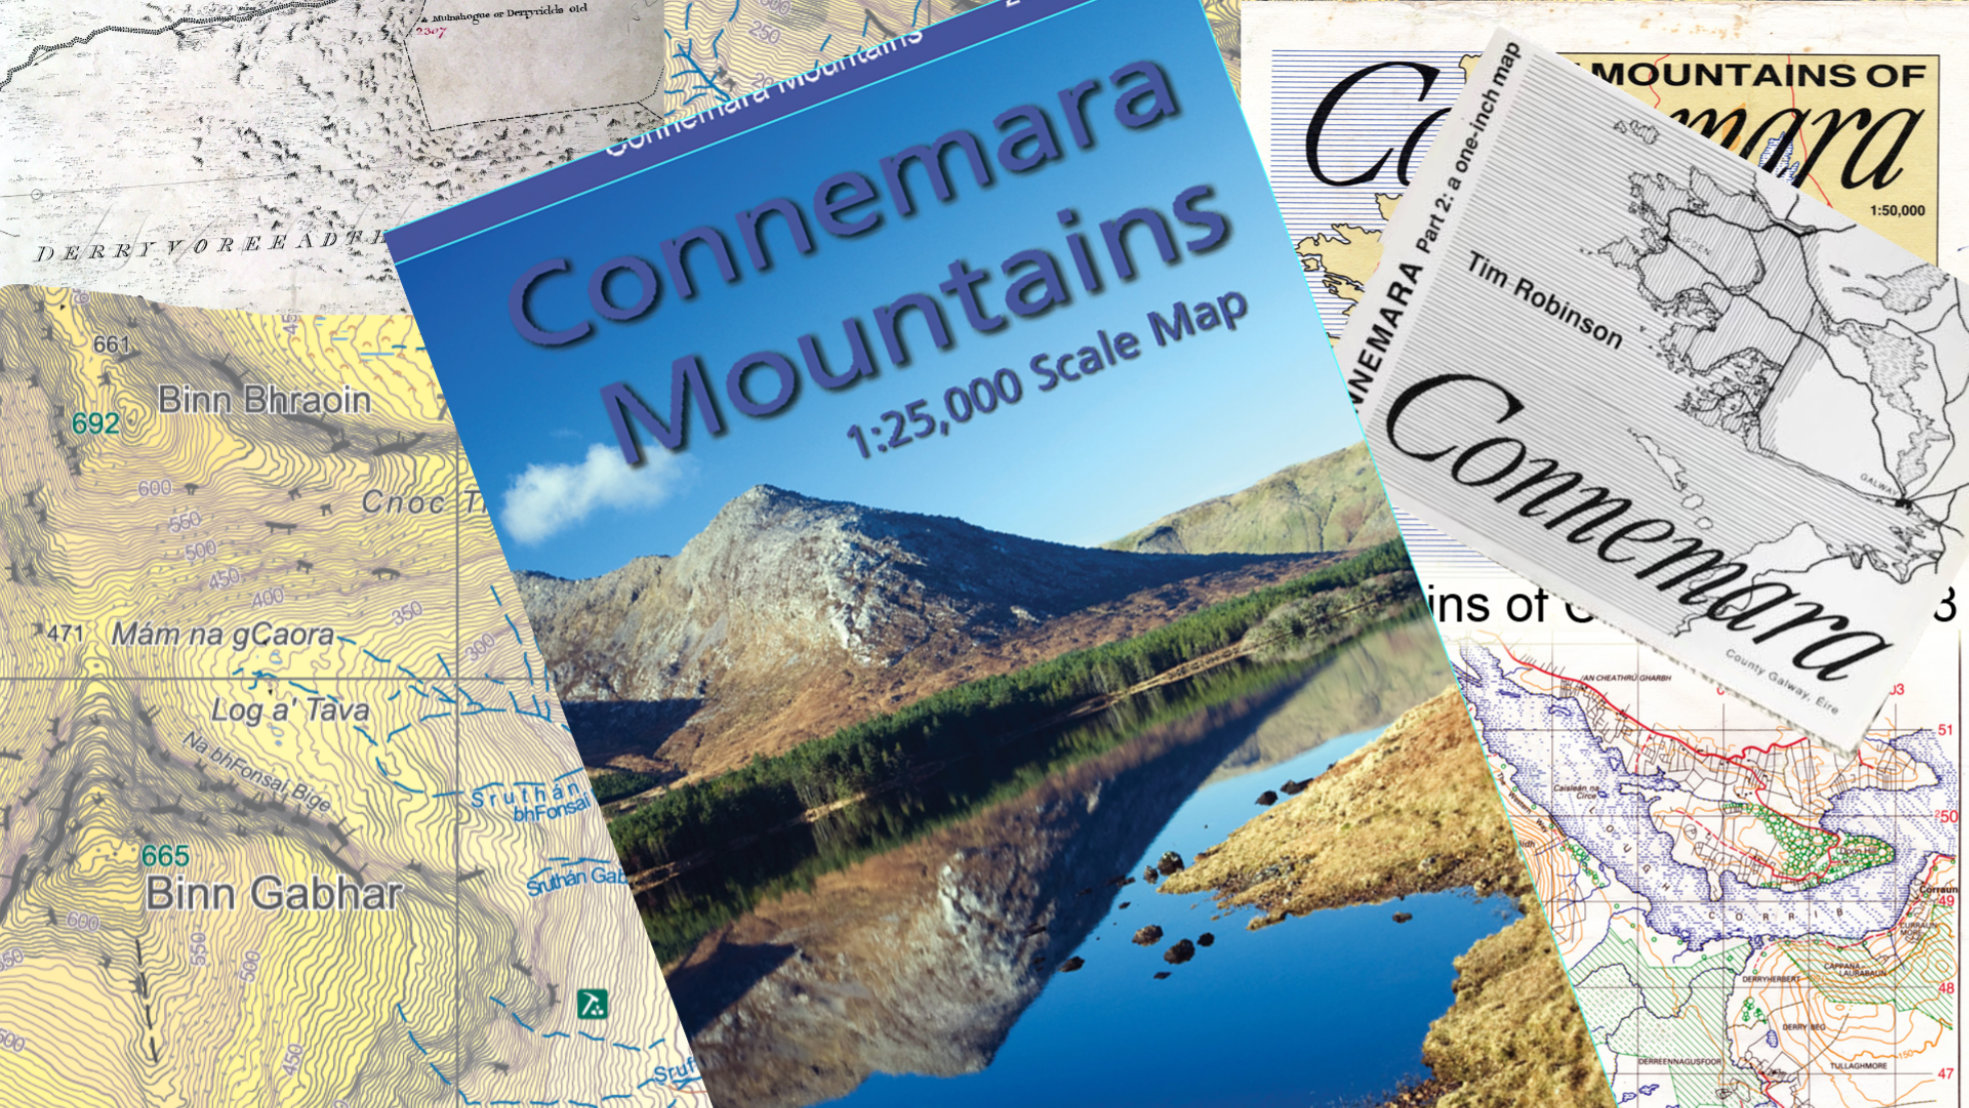 Placenames on Connemara Mountains Map